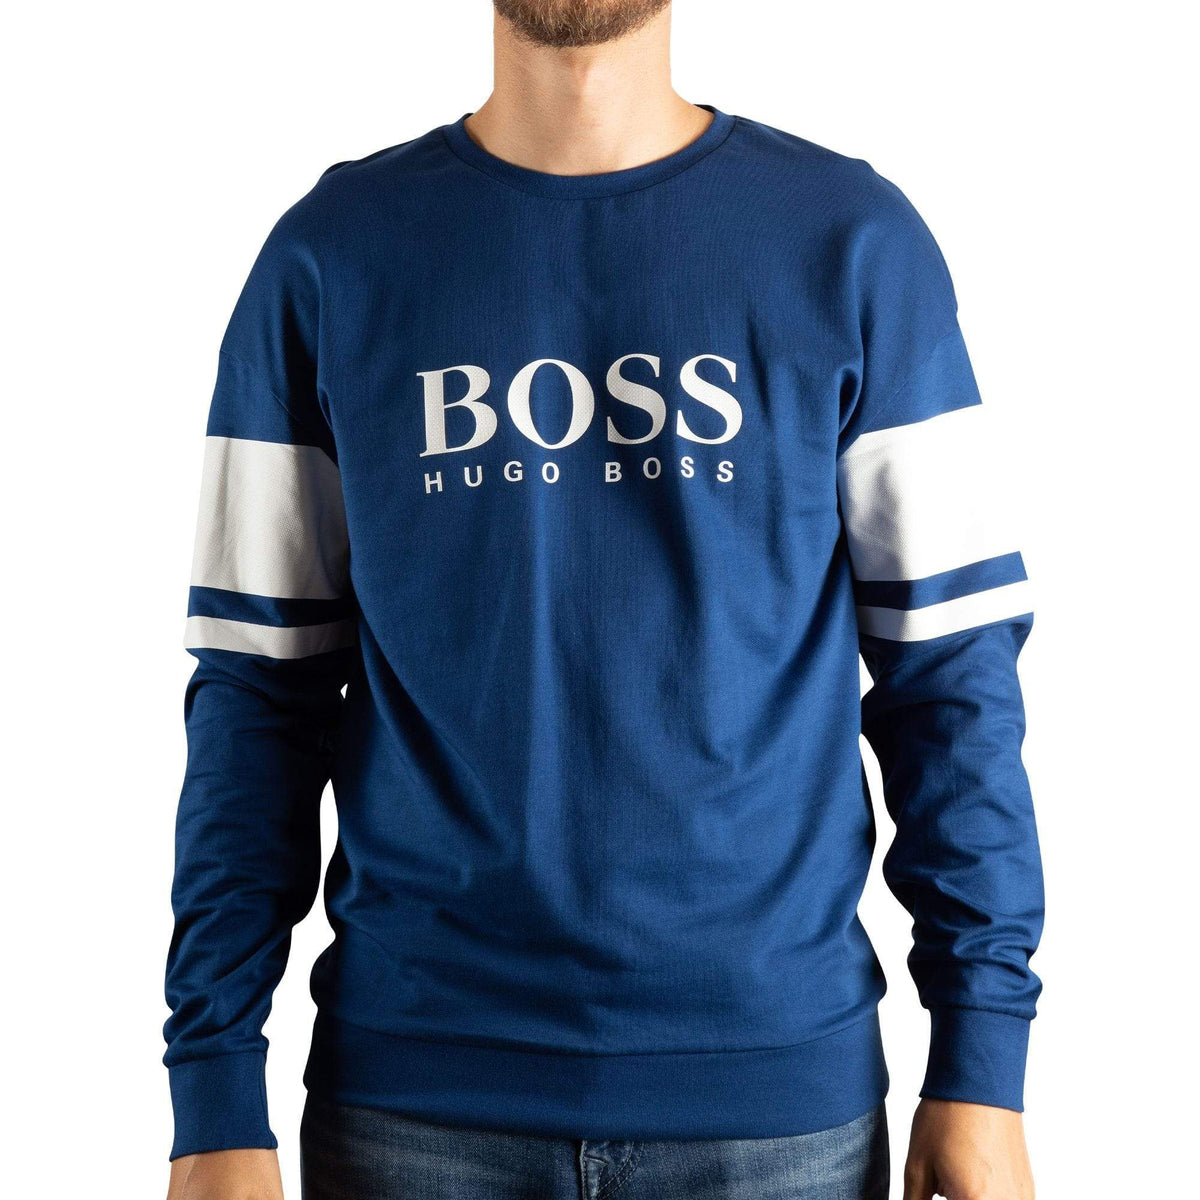 BOSS Logo Loungewear Sweatshirt In French Terry With Contrast Stripes